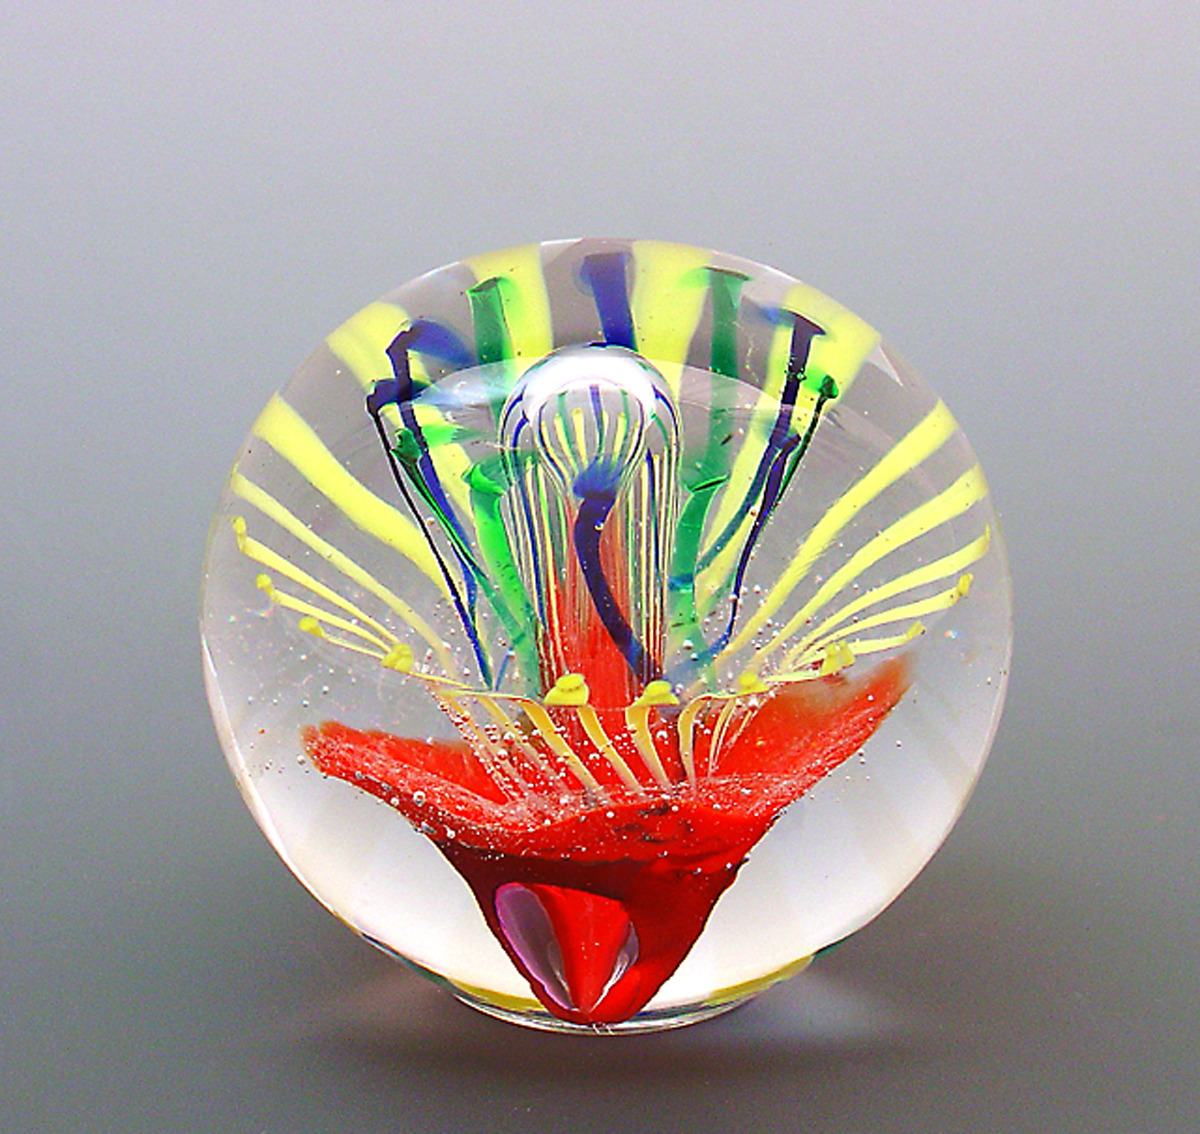 Hand Made Glass Paperweight - Galaxy 2403933 Roecey 3